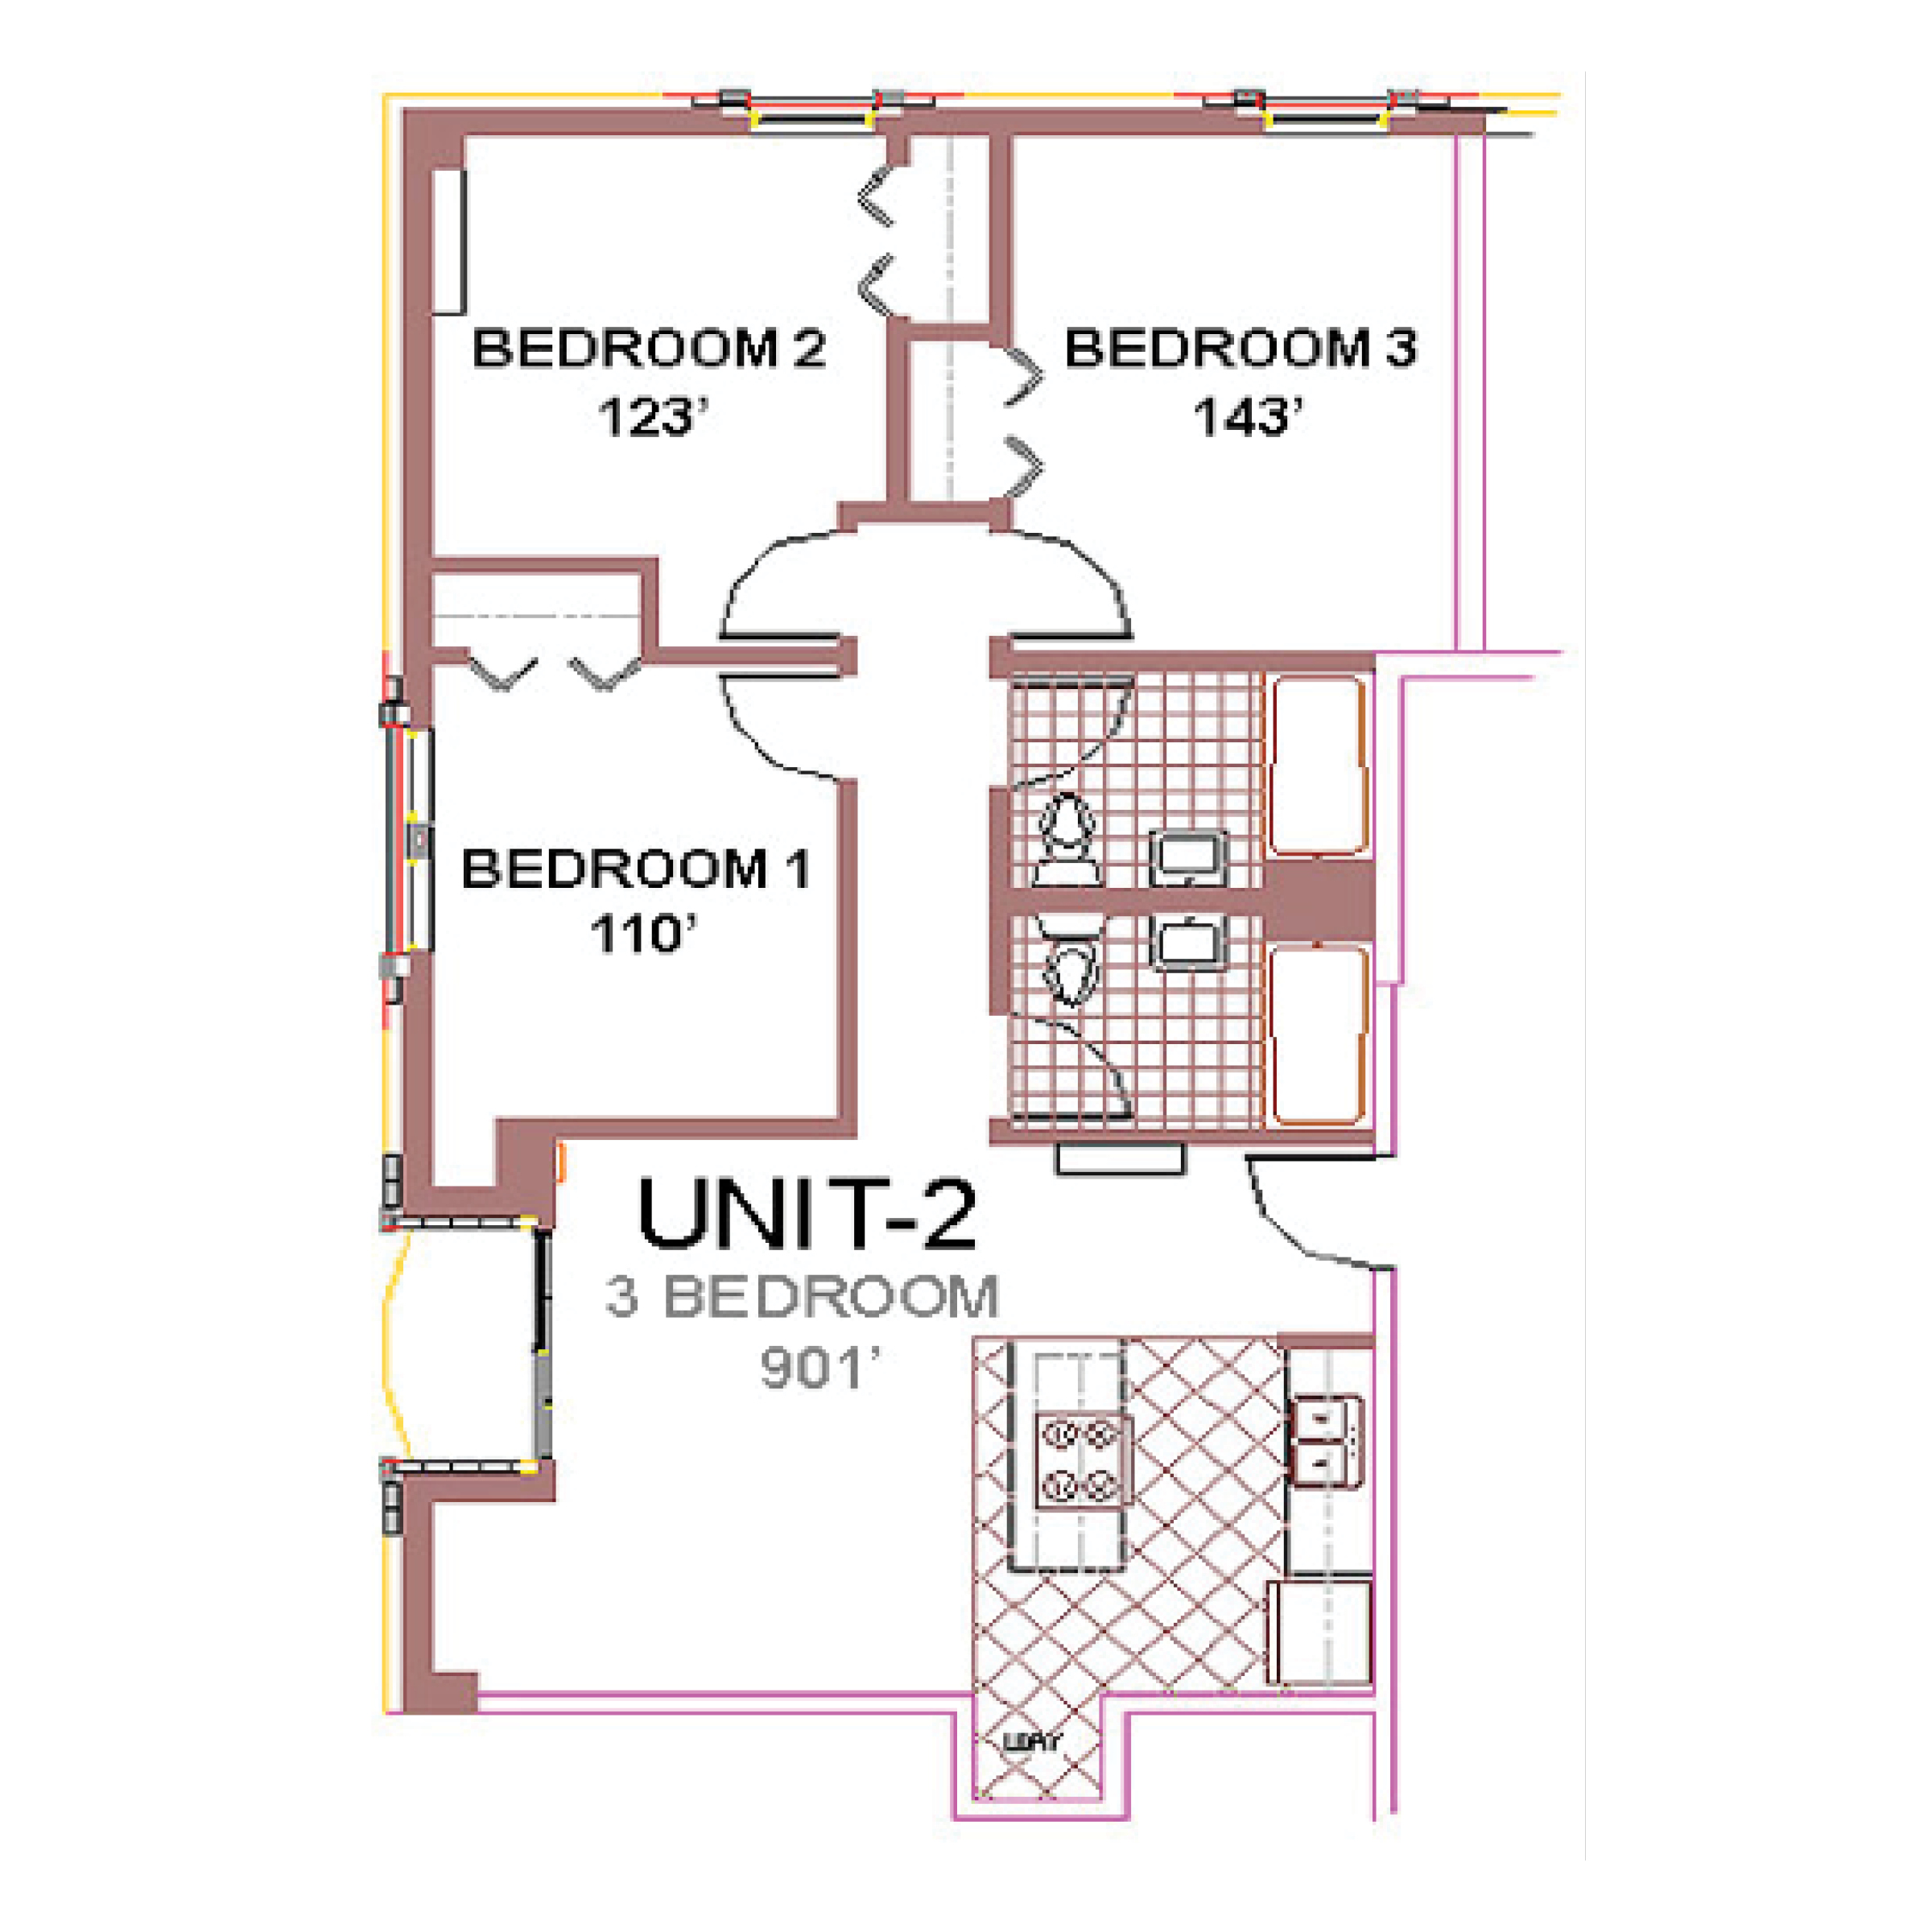 The Aberdeen Apartment Layout 2, 3 bedroom floor plan